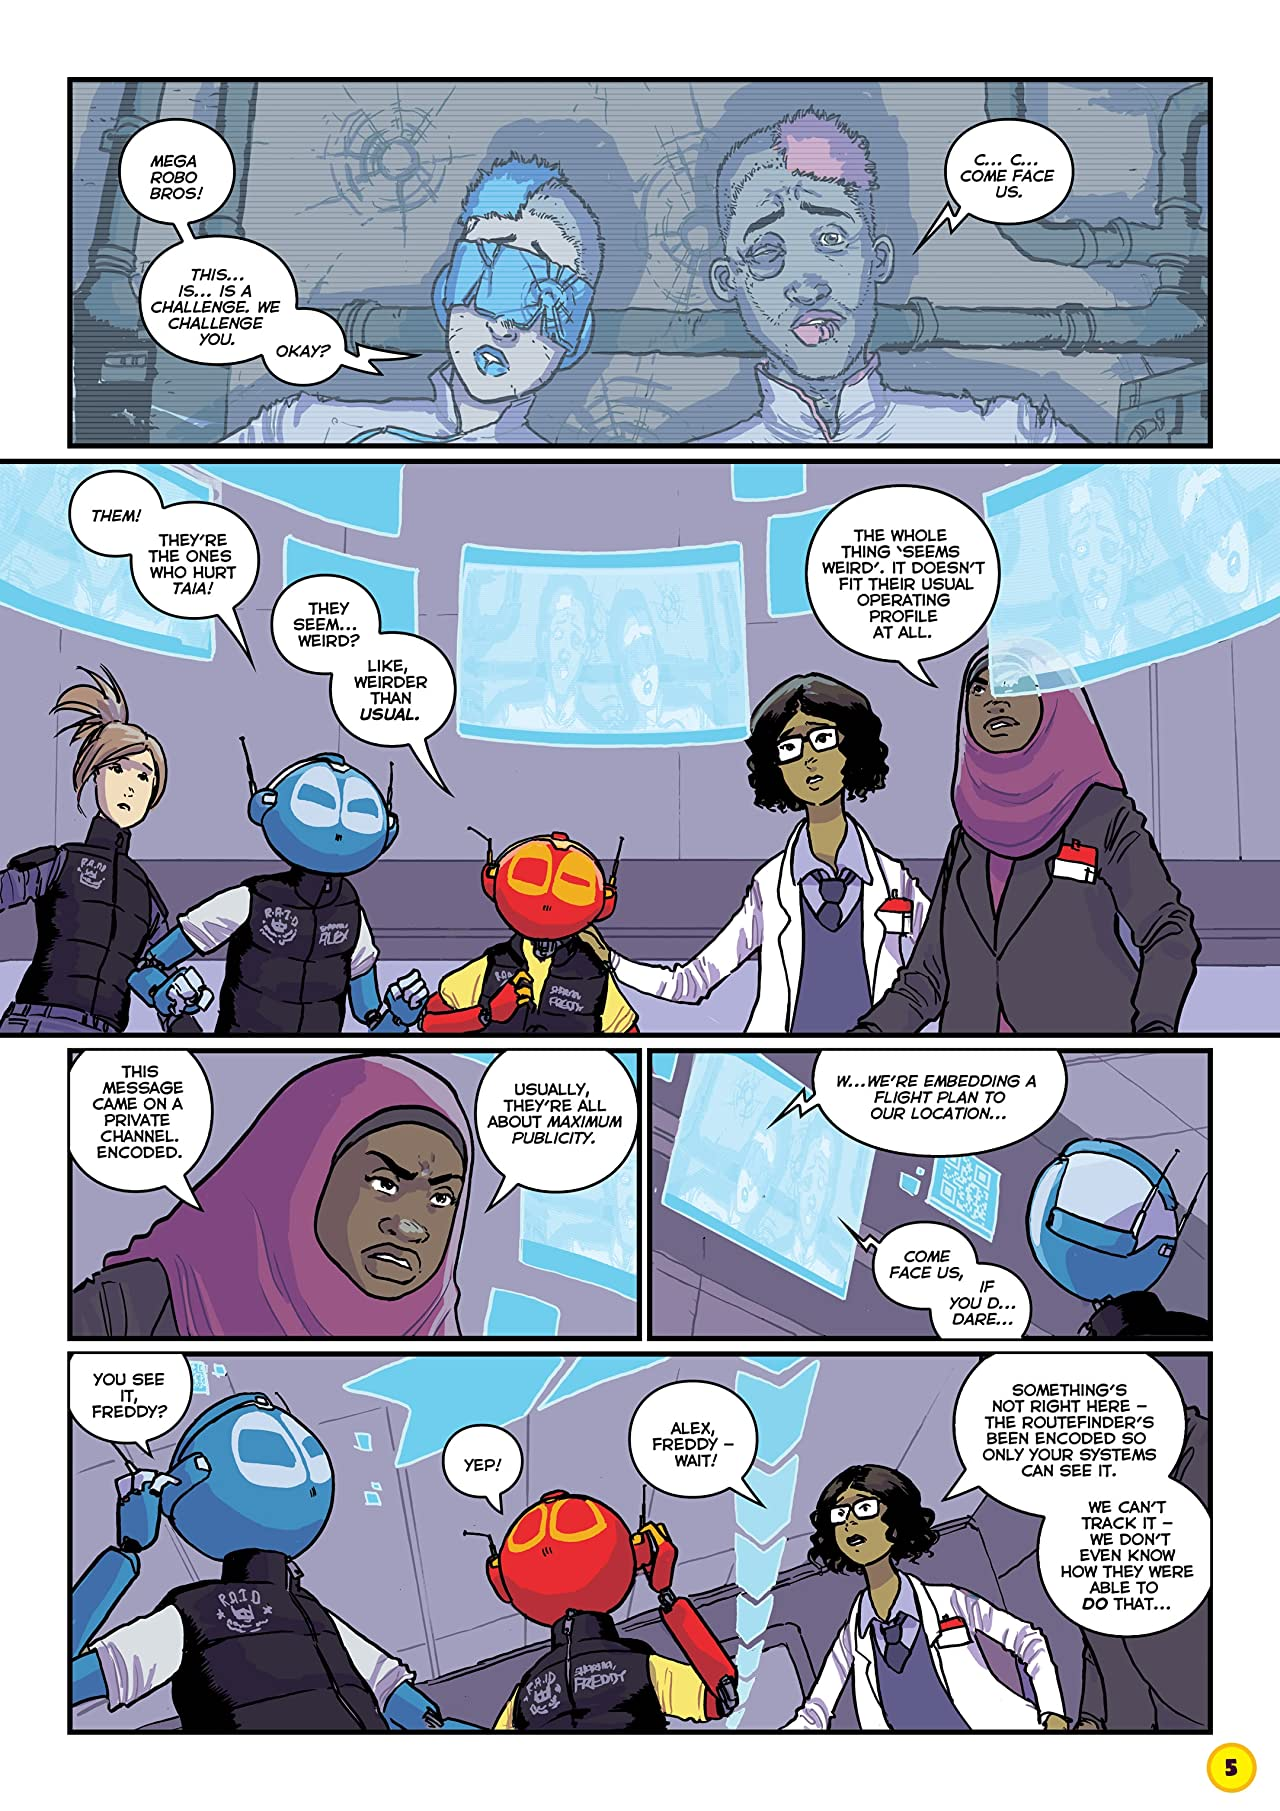 The Phoenix #269: The Weekly Story Comic